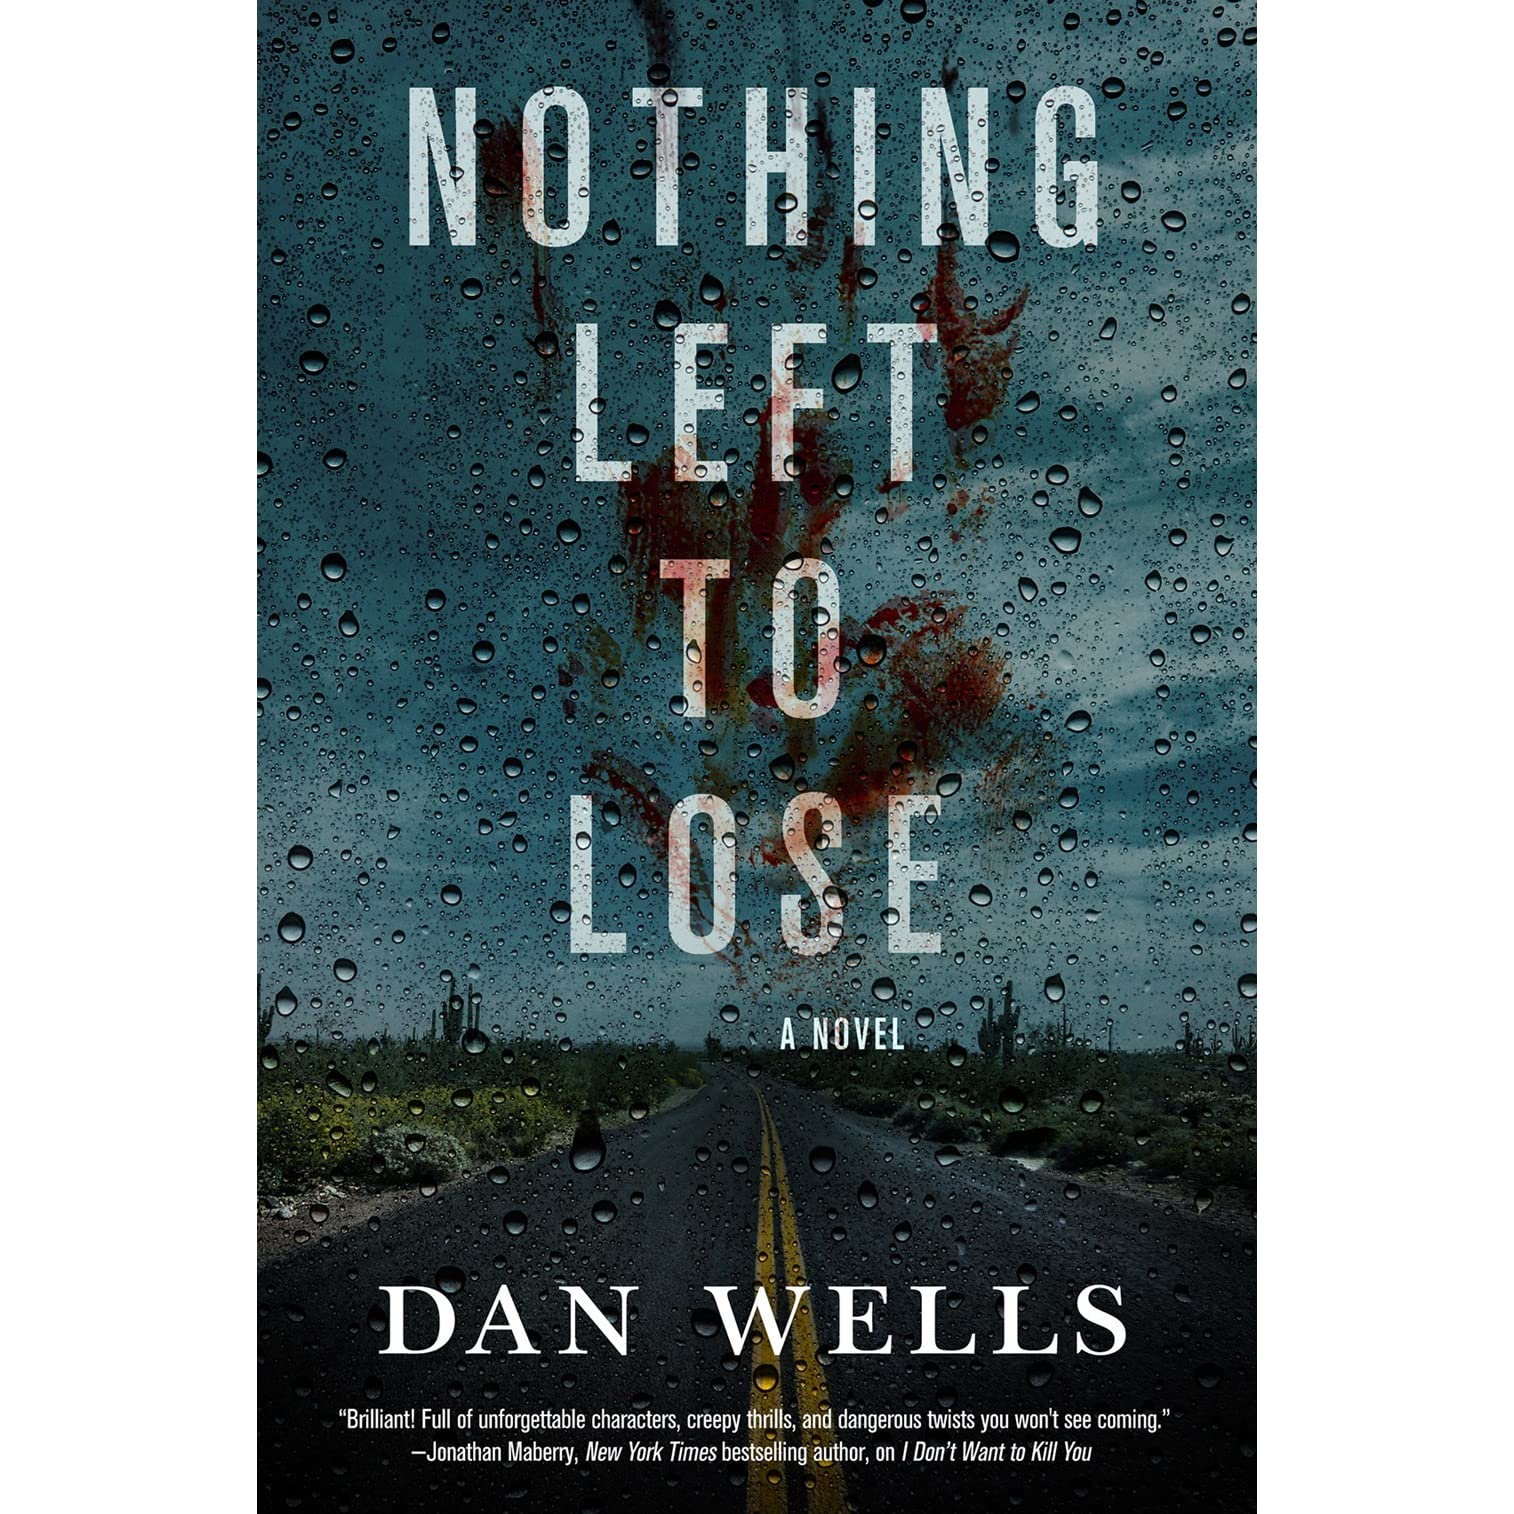 Download nothing ebook free lose left to